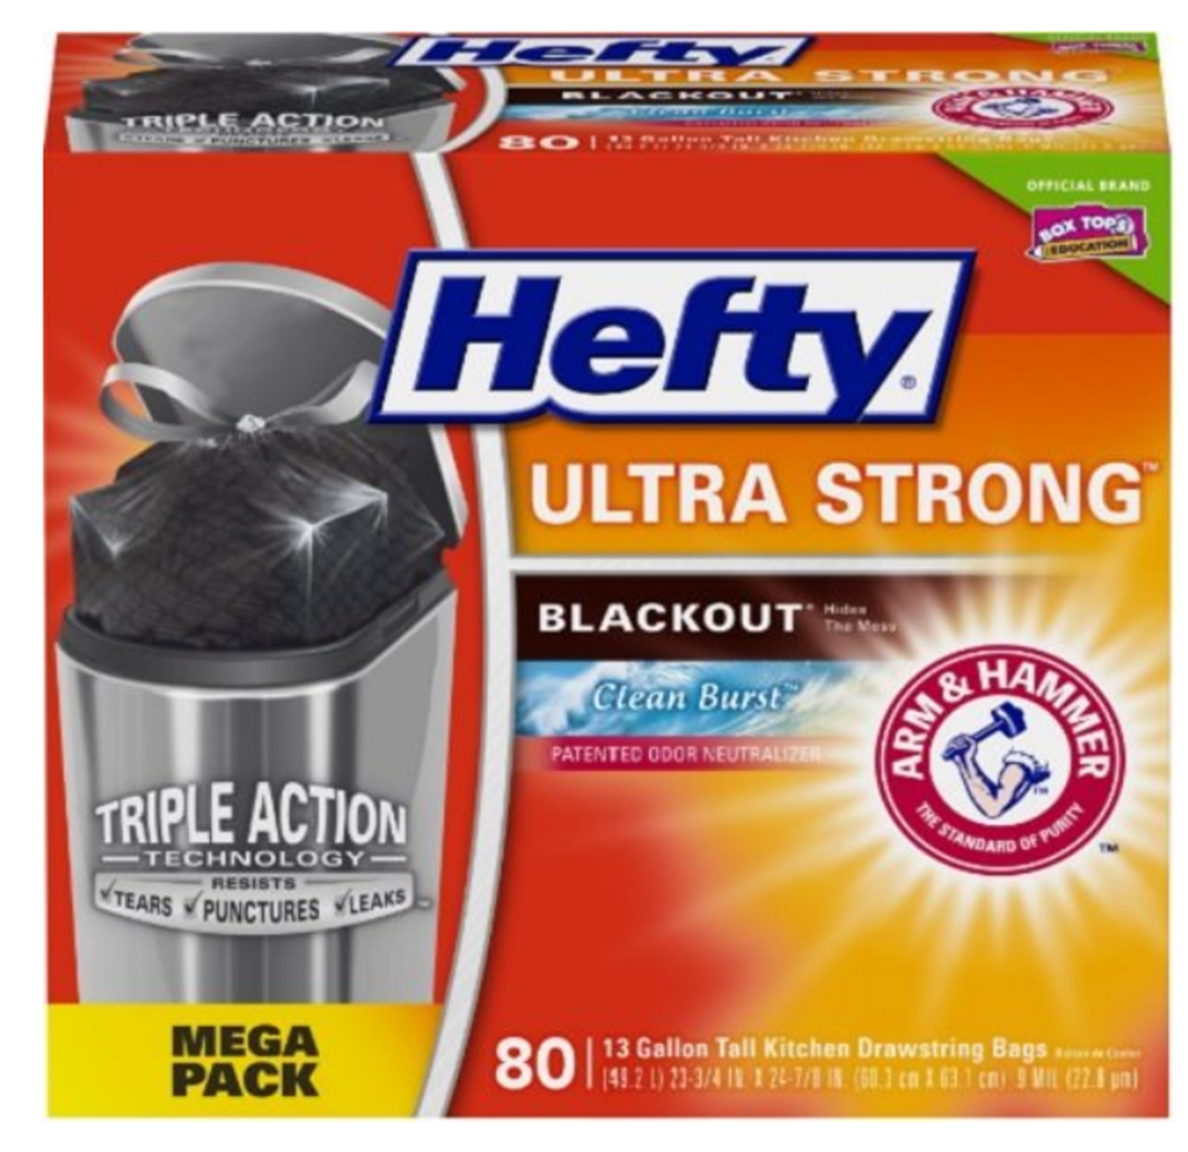 Amazon – 80 Count, 13 Gallon Hefty Ultra Strong Tall Kitchen Blackout Trash Bags Only $9.11, Reg $14.99 + Free Shipping!